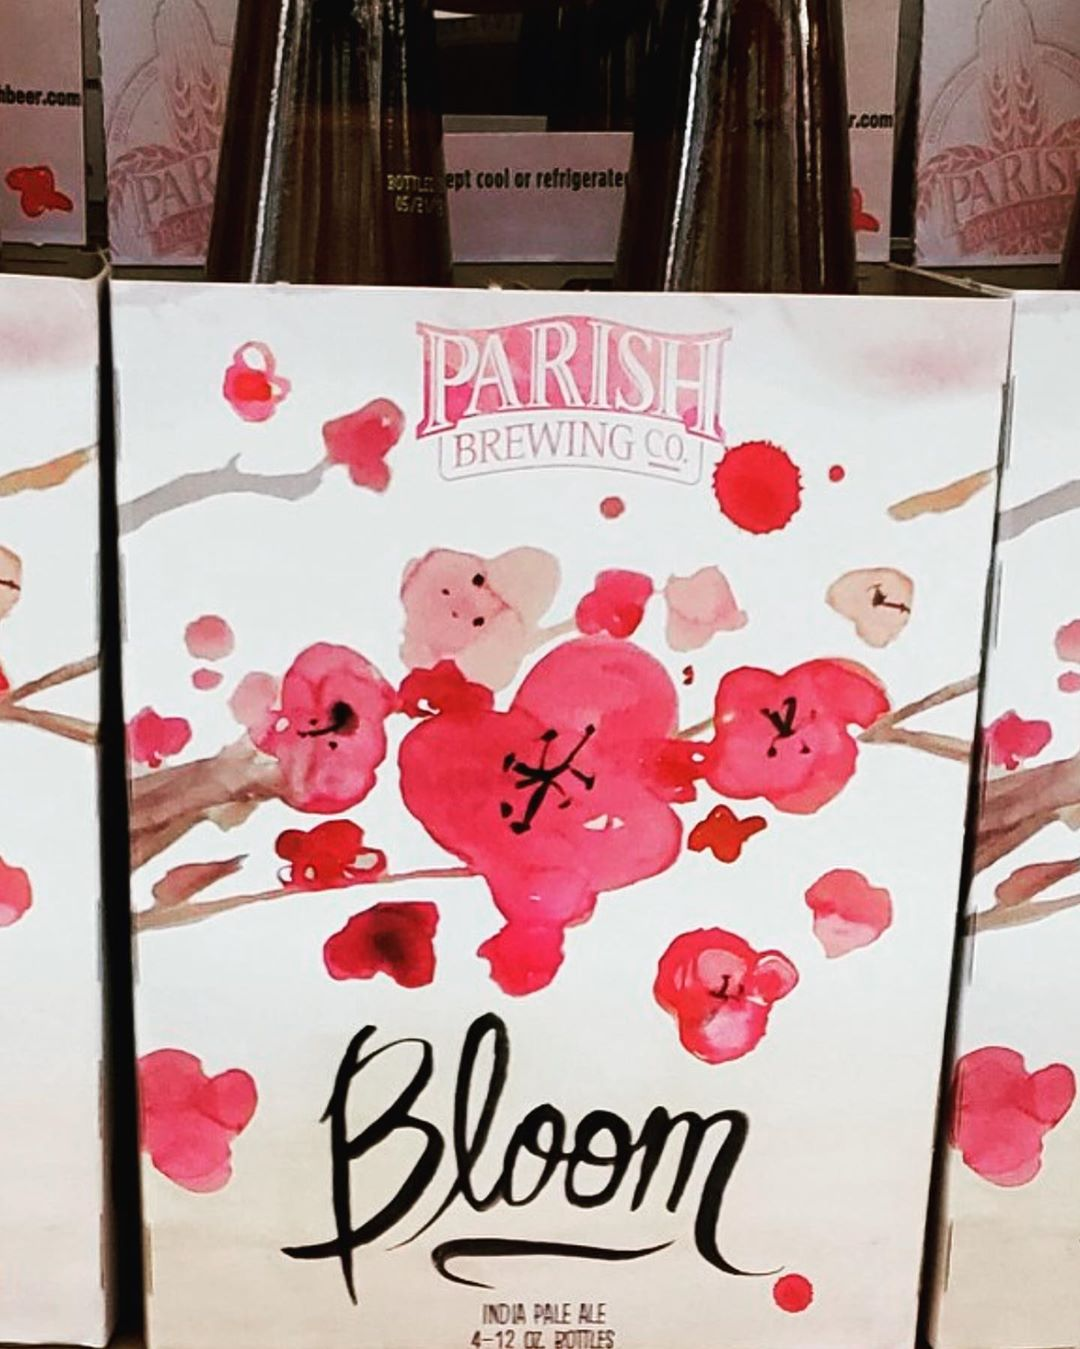 @parishbrewingco Bloom is now in stock at our Perkins Rd location! #beer #drinklocal #haze #summertime…